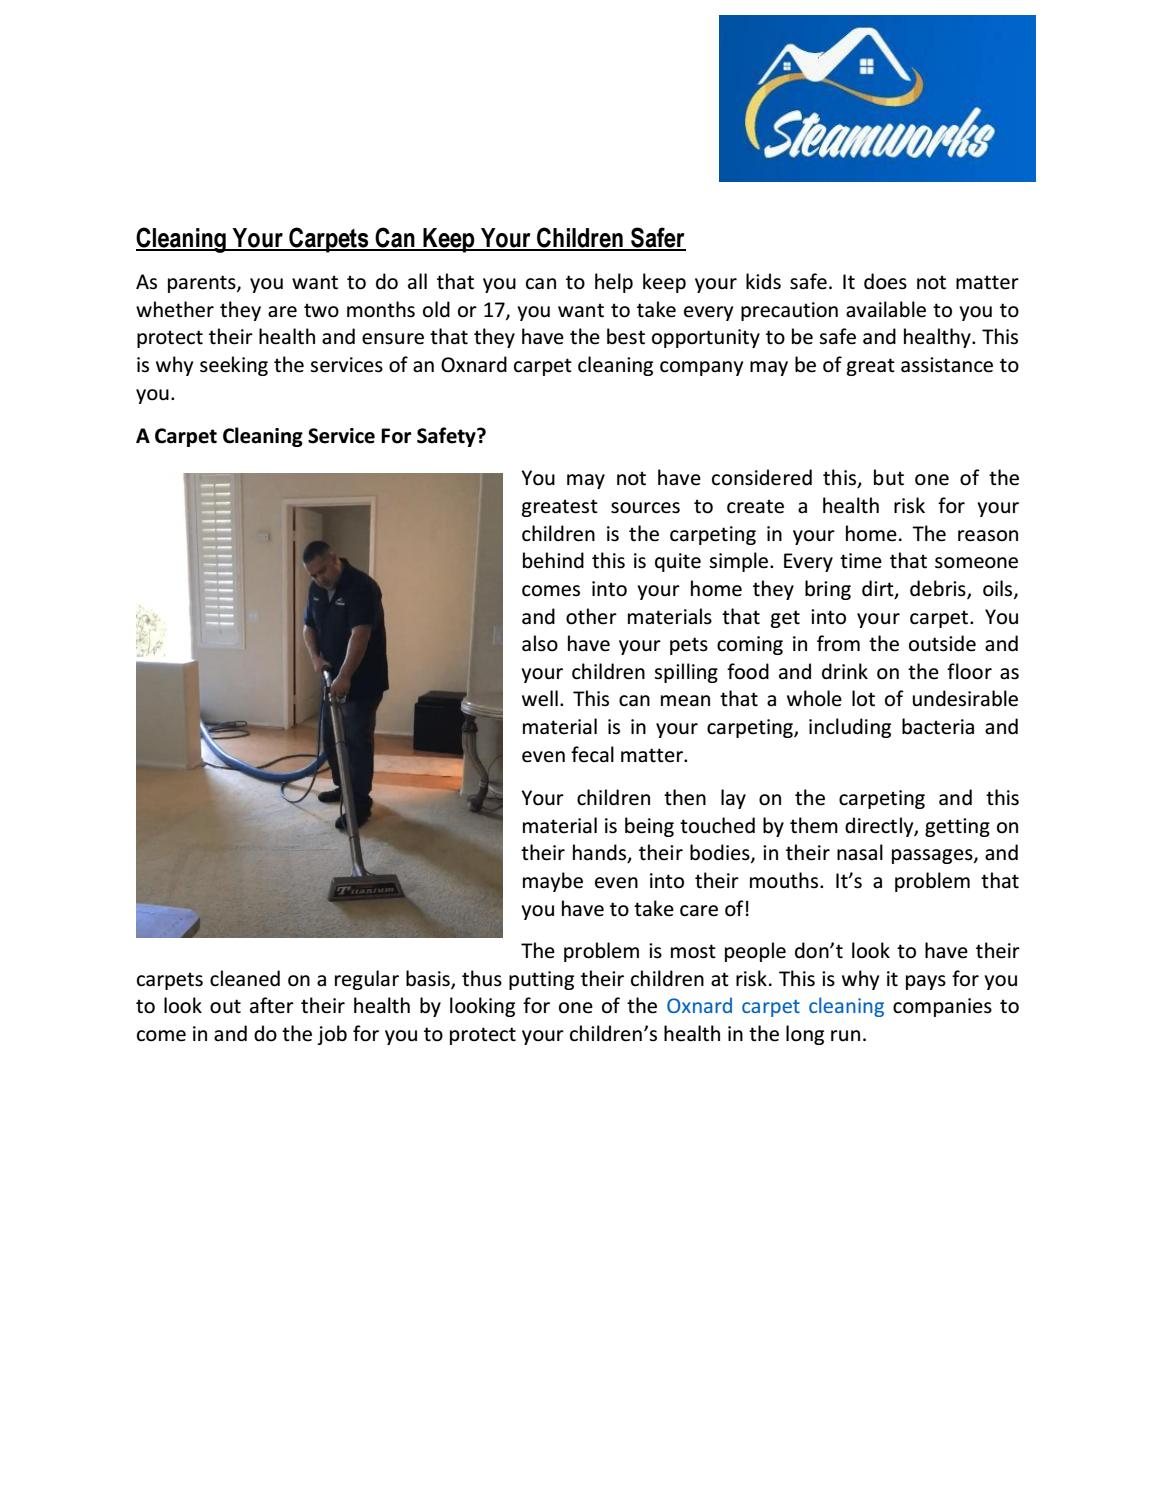 Cleaning your carpets can keep your children safer by steamworksvc - issuu